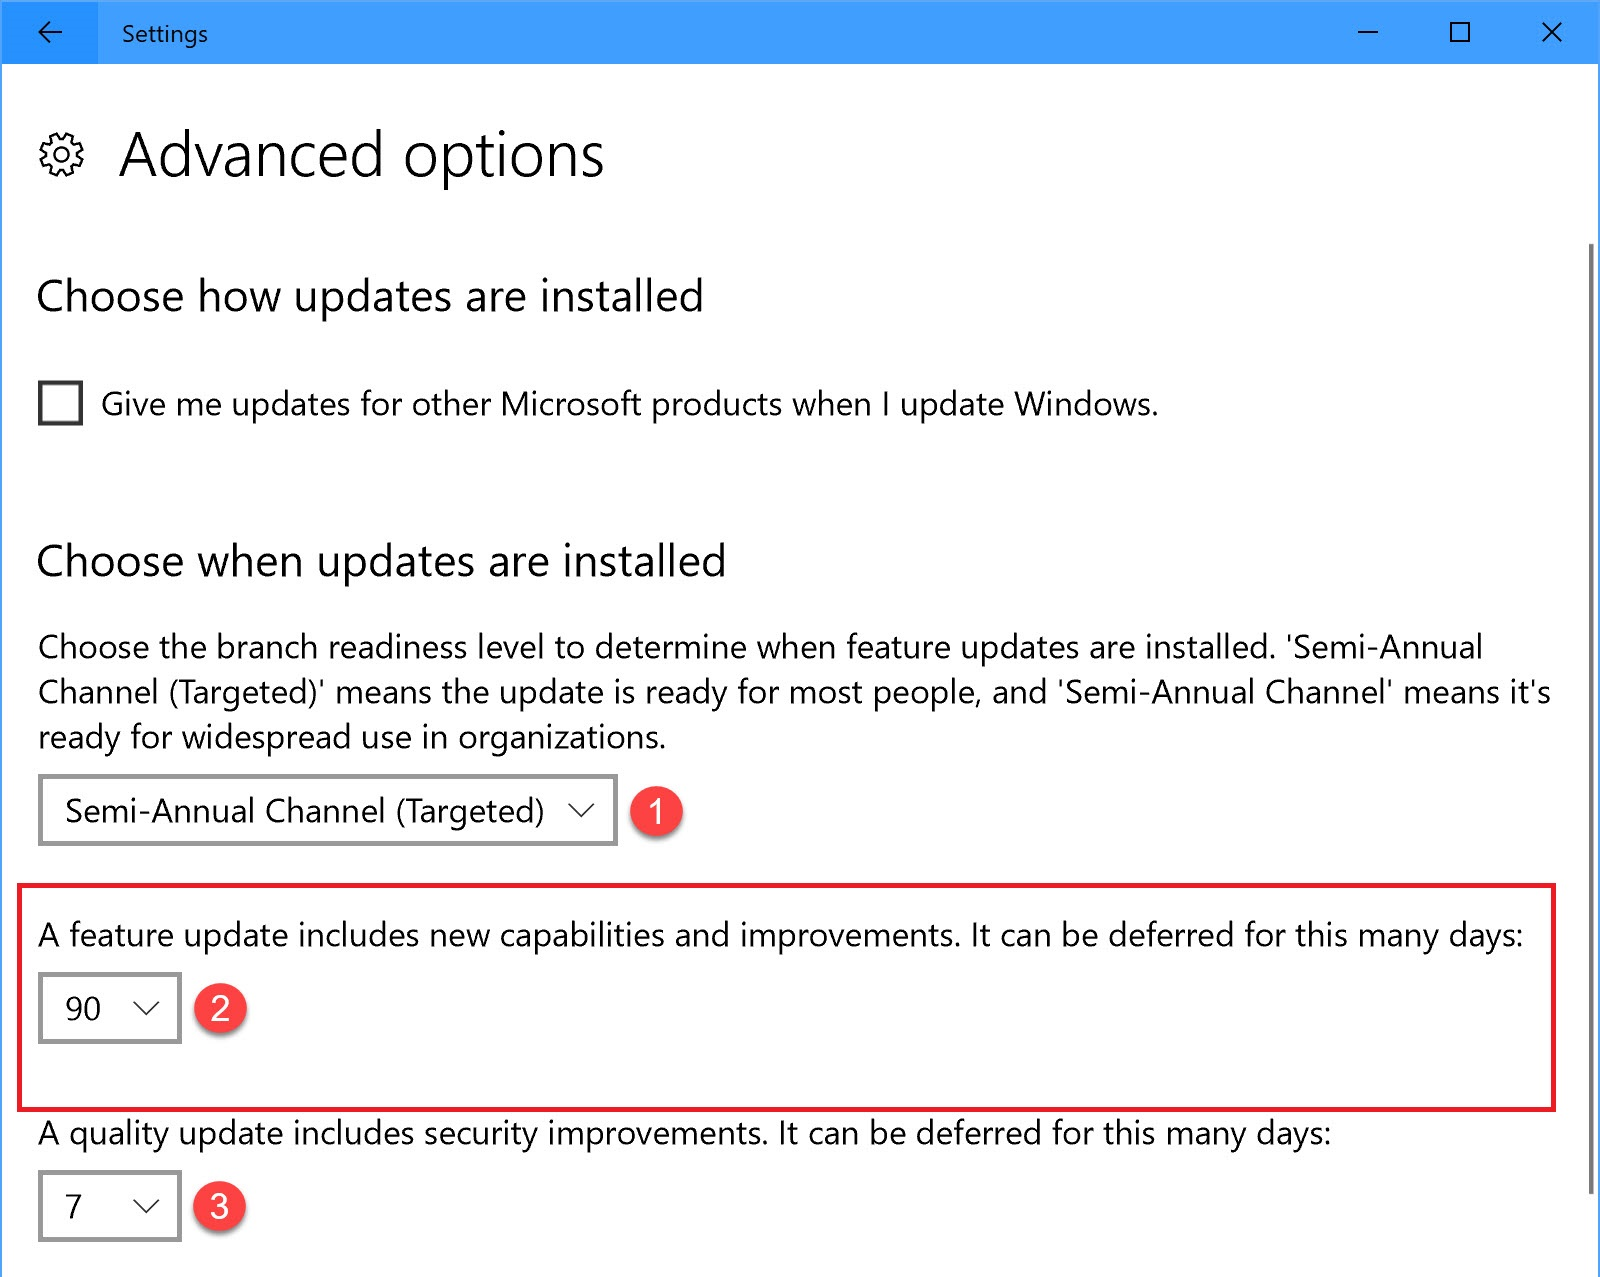 W10 Pro defer updates option is gone. 85ca87ce-4271-4bd6-a840-63f6c6b08ec1?upload=true.jpg